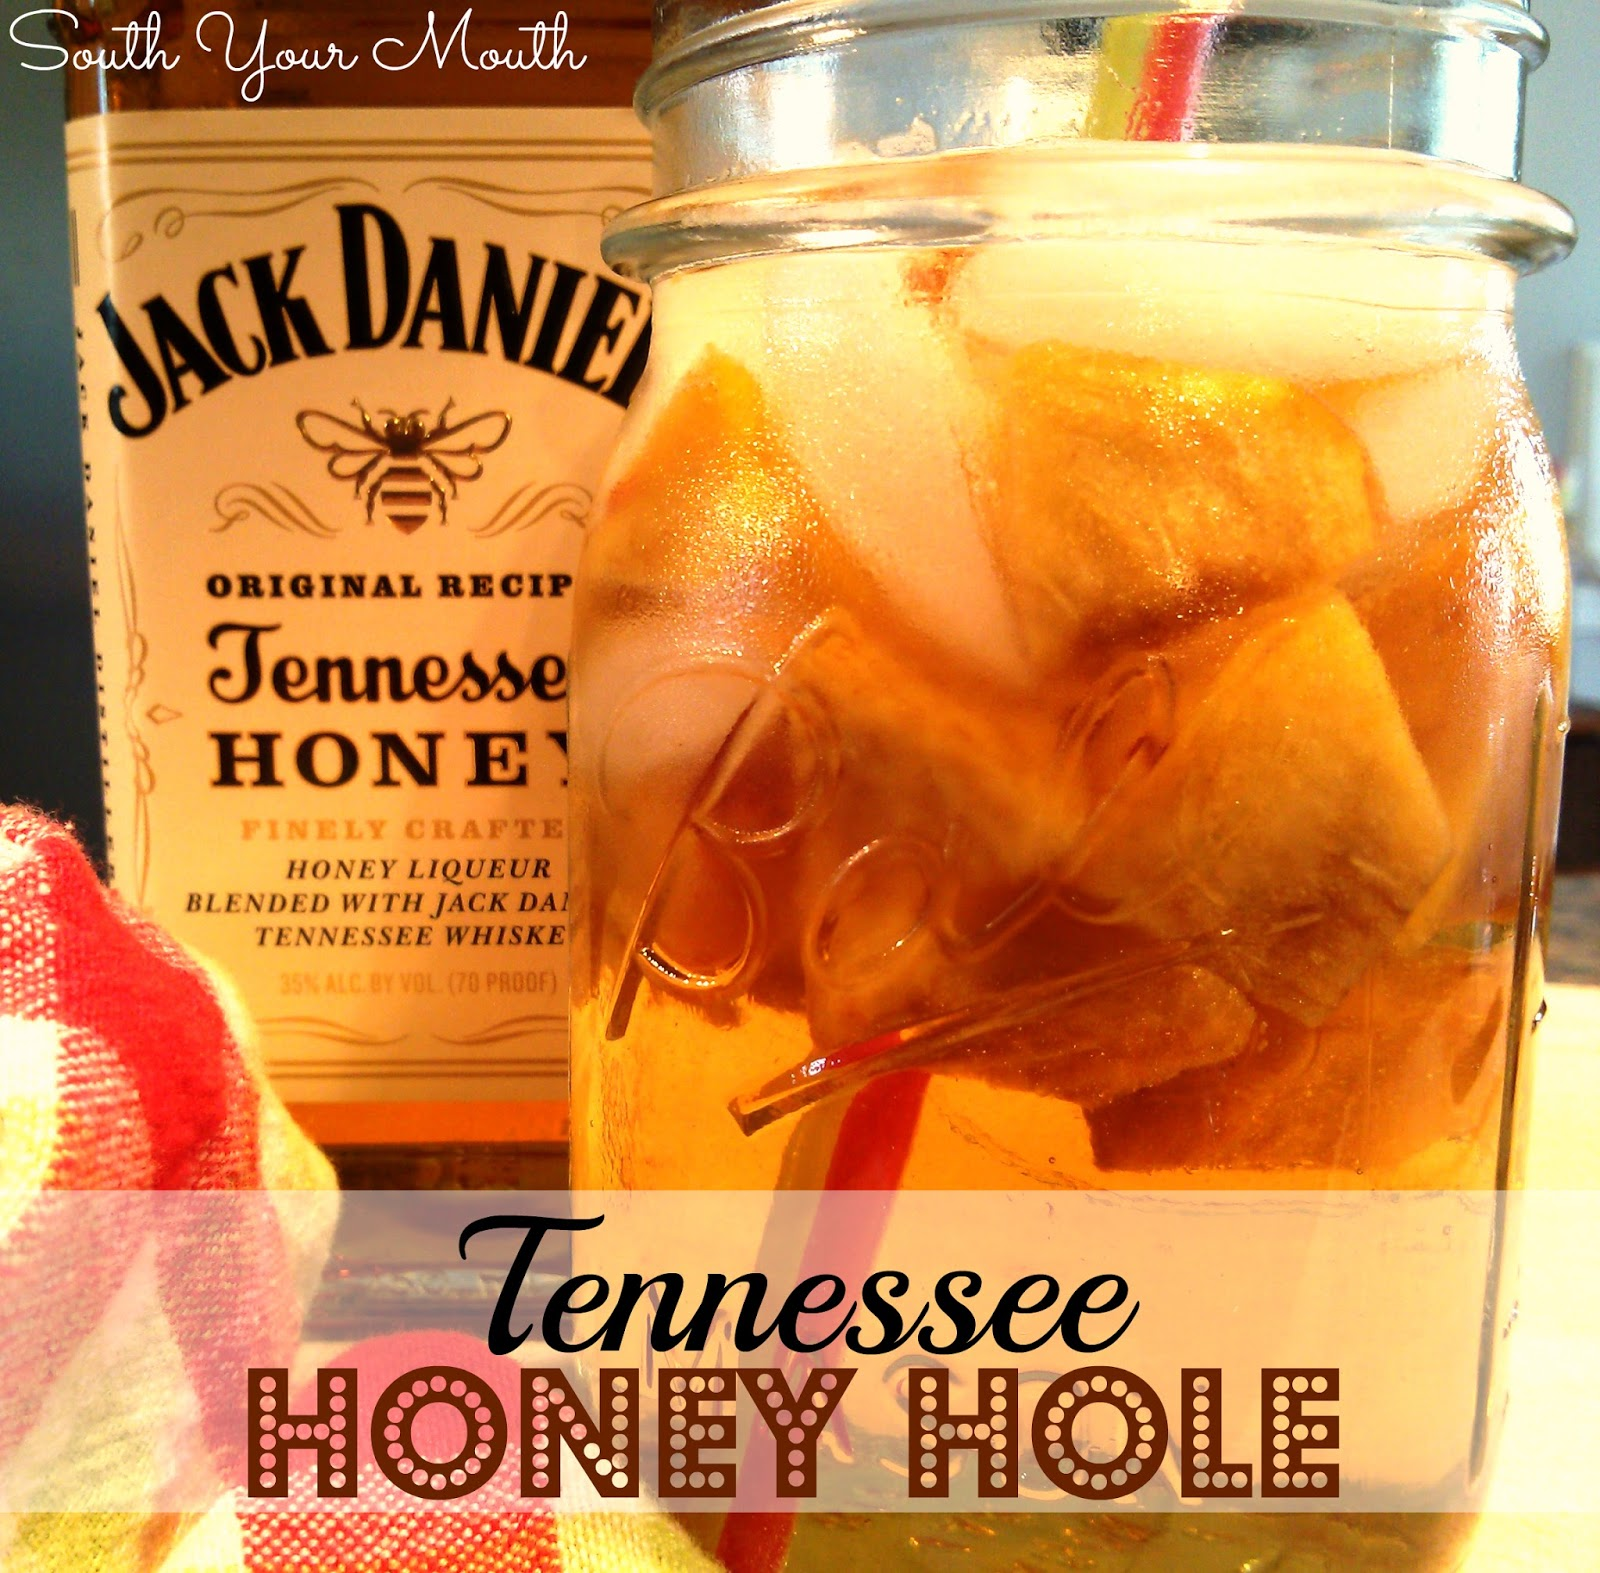 Tennessee Honey Hole: Jack Daniels Tennessee Honey, fresh peaches and ginger ale!